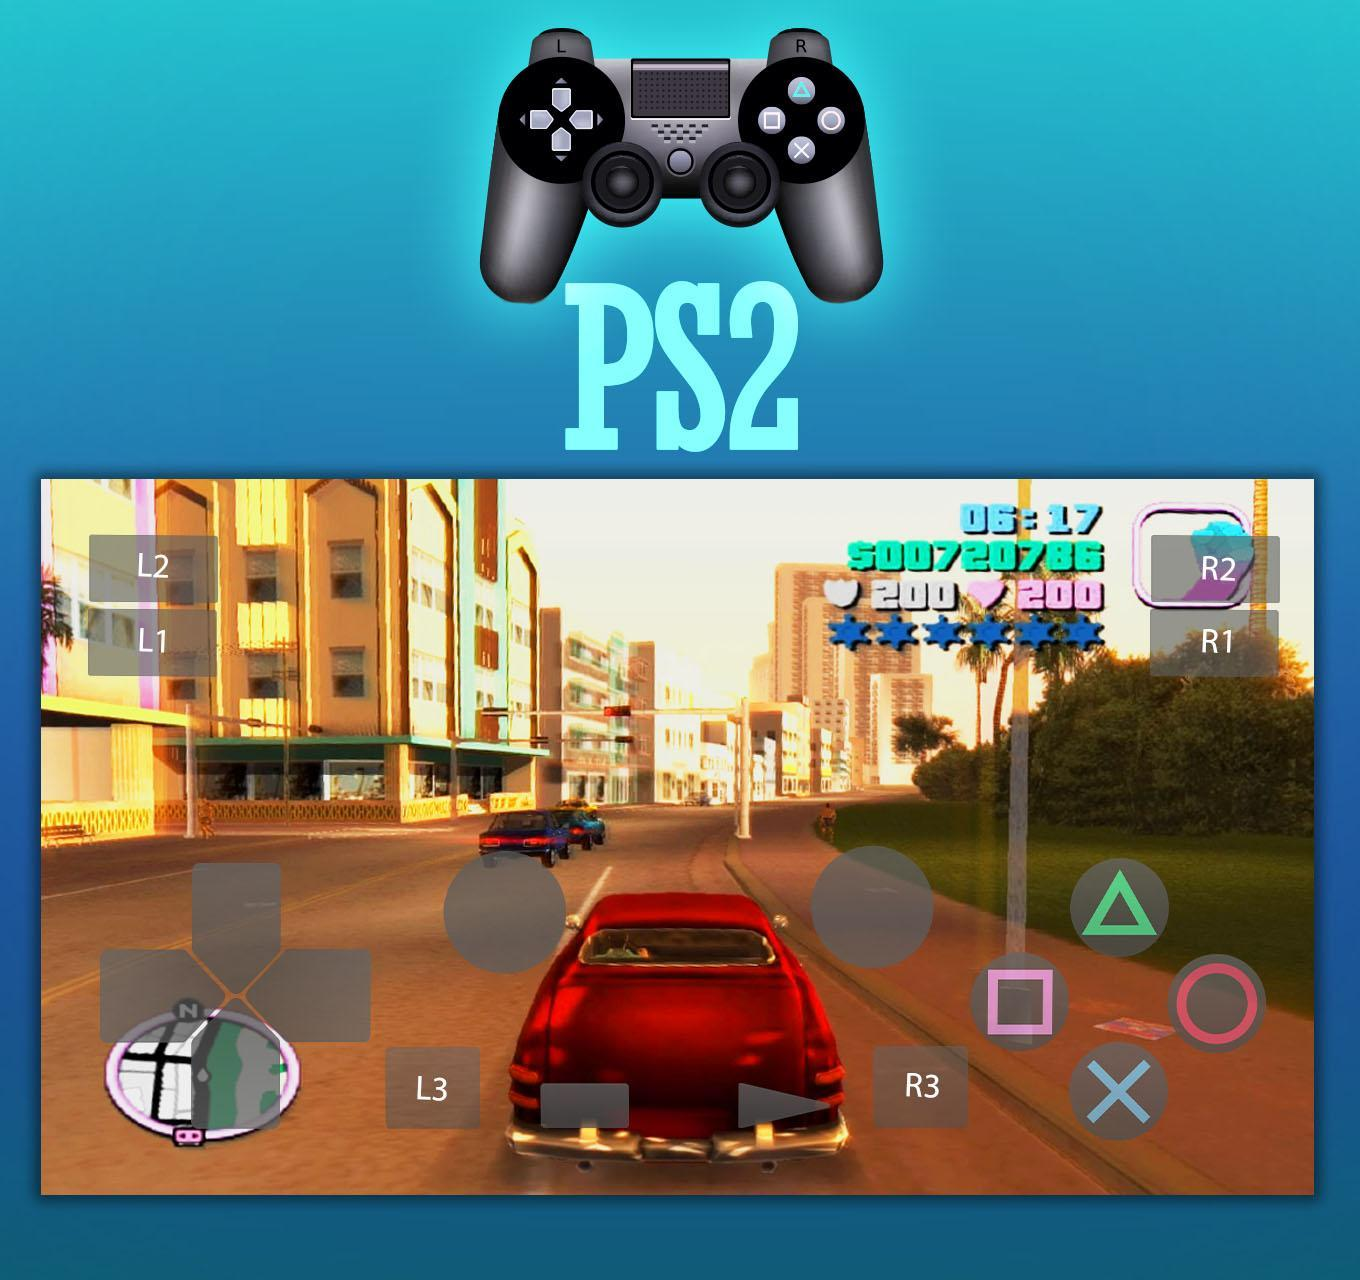 3d Ps2 Emulator Play Free 3d Ps2 Ppsspp Games For Android